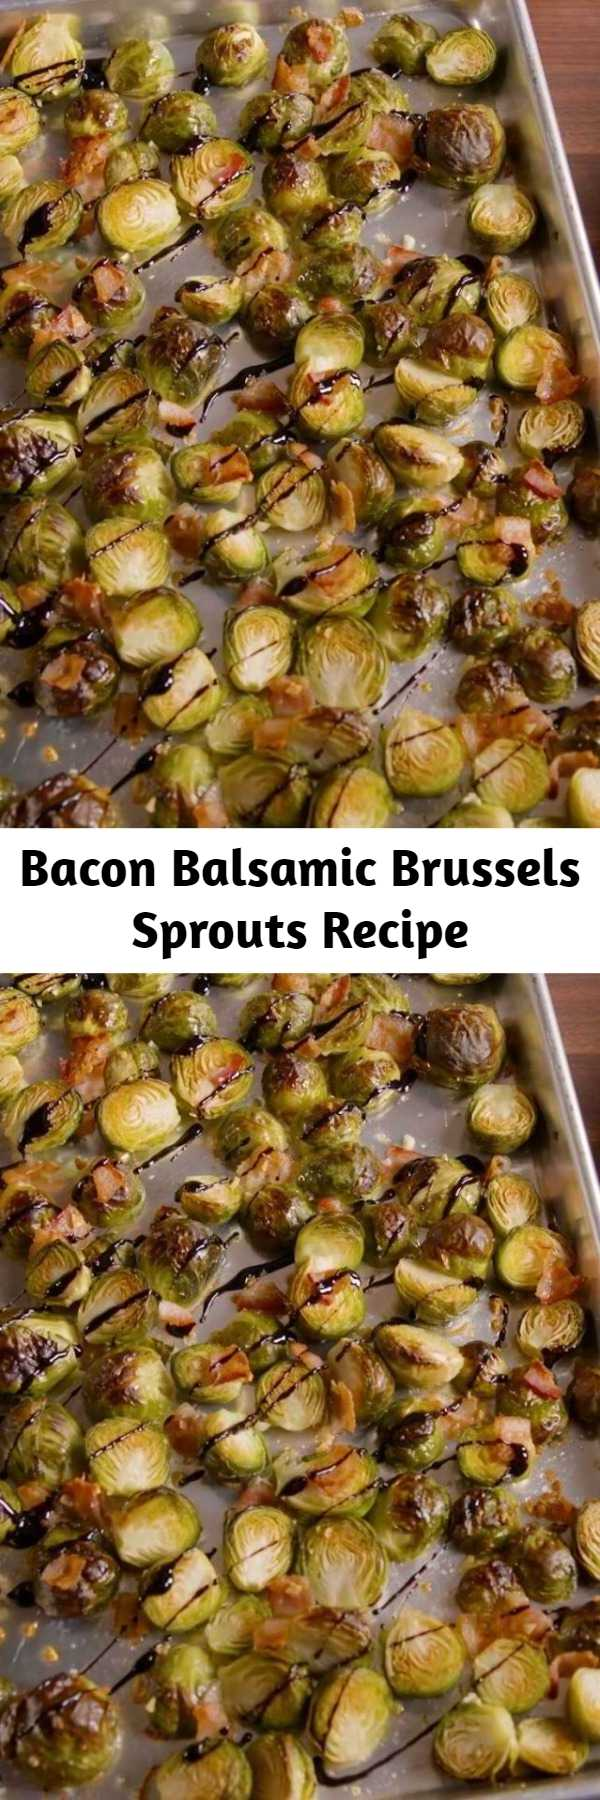 Bacon Balsamic Brussels Sprouts Recipe - These Brussels sprouts are easy enough to make on a weeknight but fancy enough to serve at a dinner party. Instead of roasting the sprouts with balsamic vinegar (which would make them soggy and mushy) we make a simple balsamic glaze to garnish them with. #easy #recipe #Brusselsprouts #brussels #bacon #Balsamic #glaze #roasted #vegetarian #crispy #honey